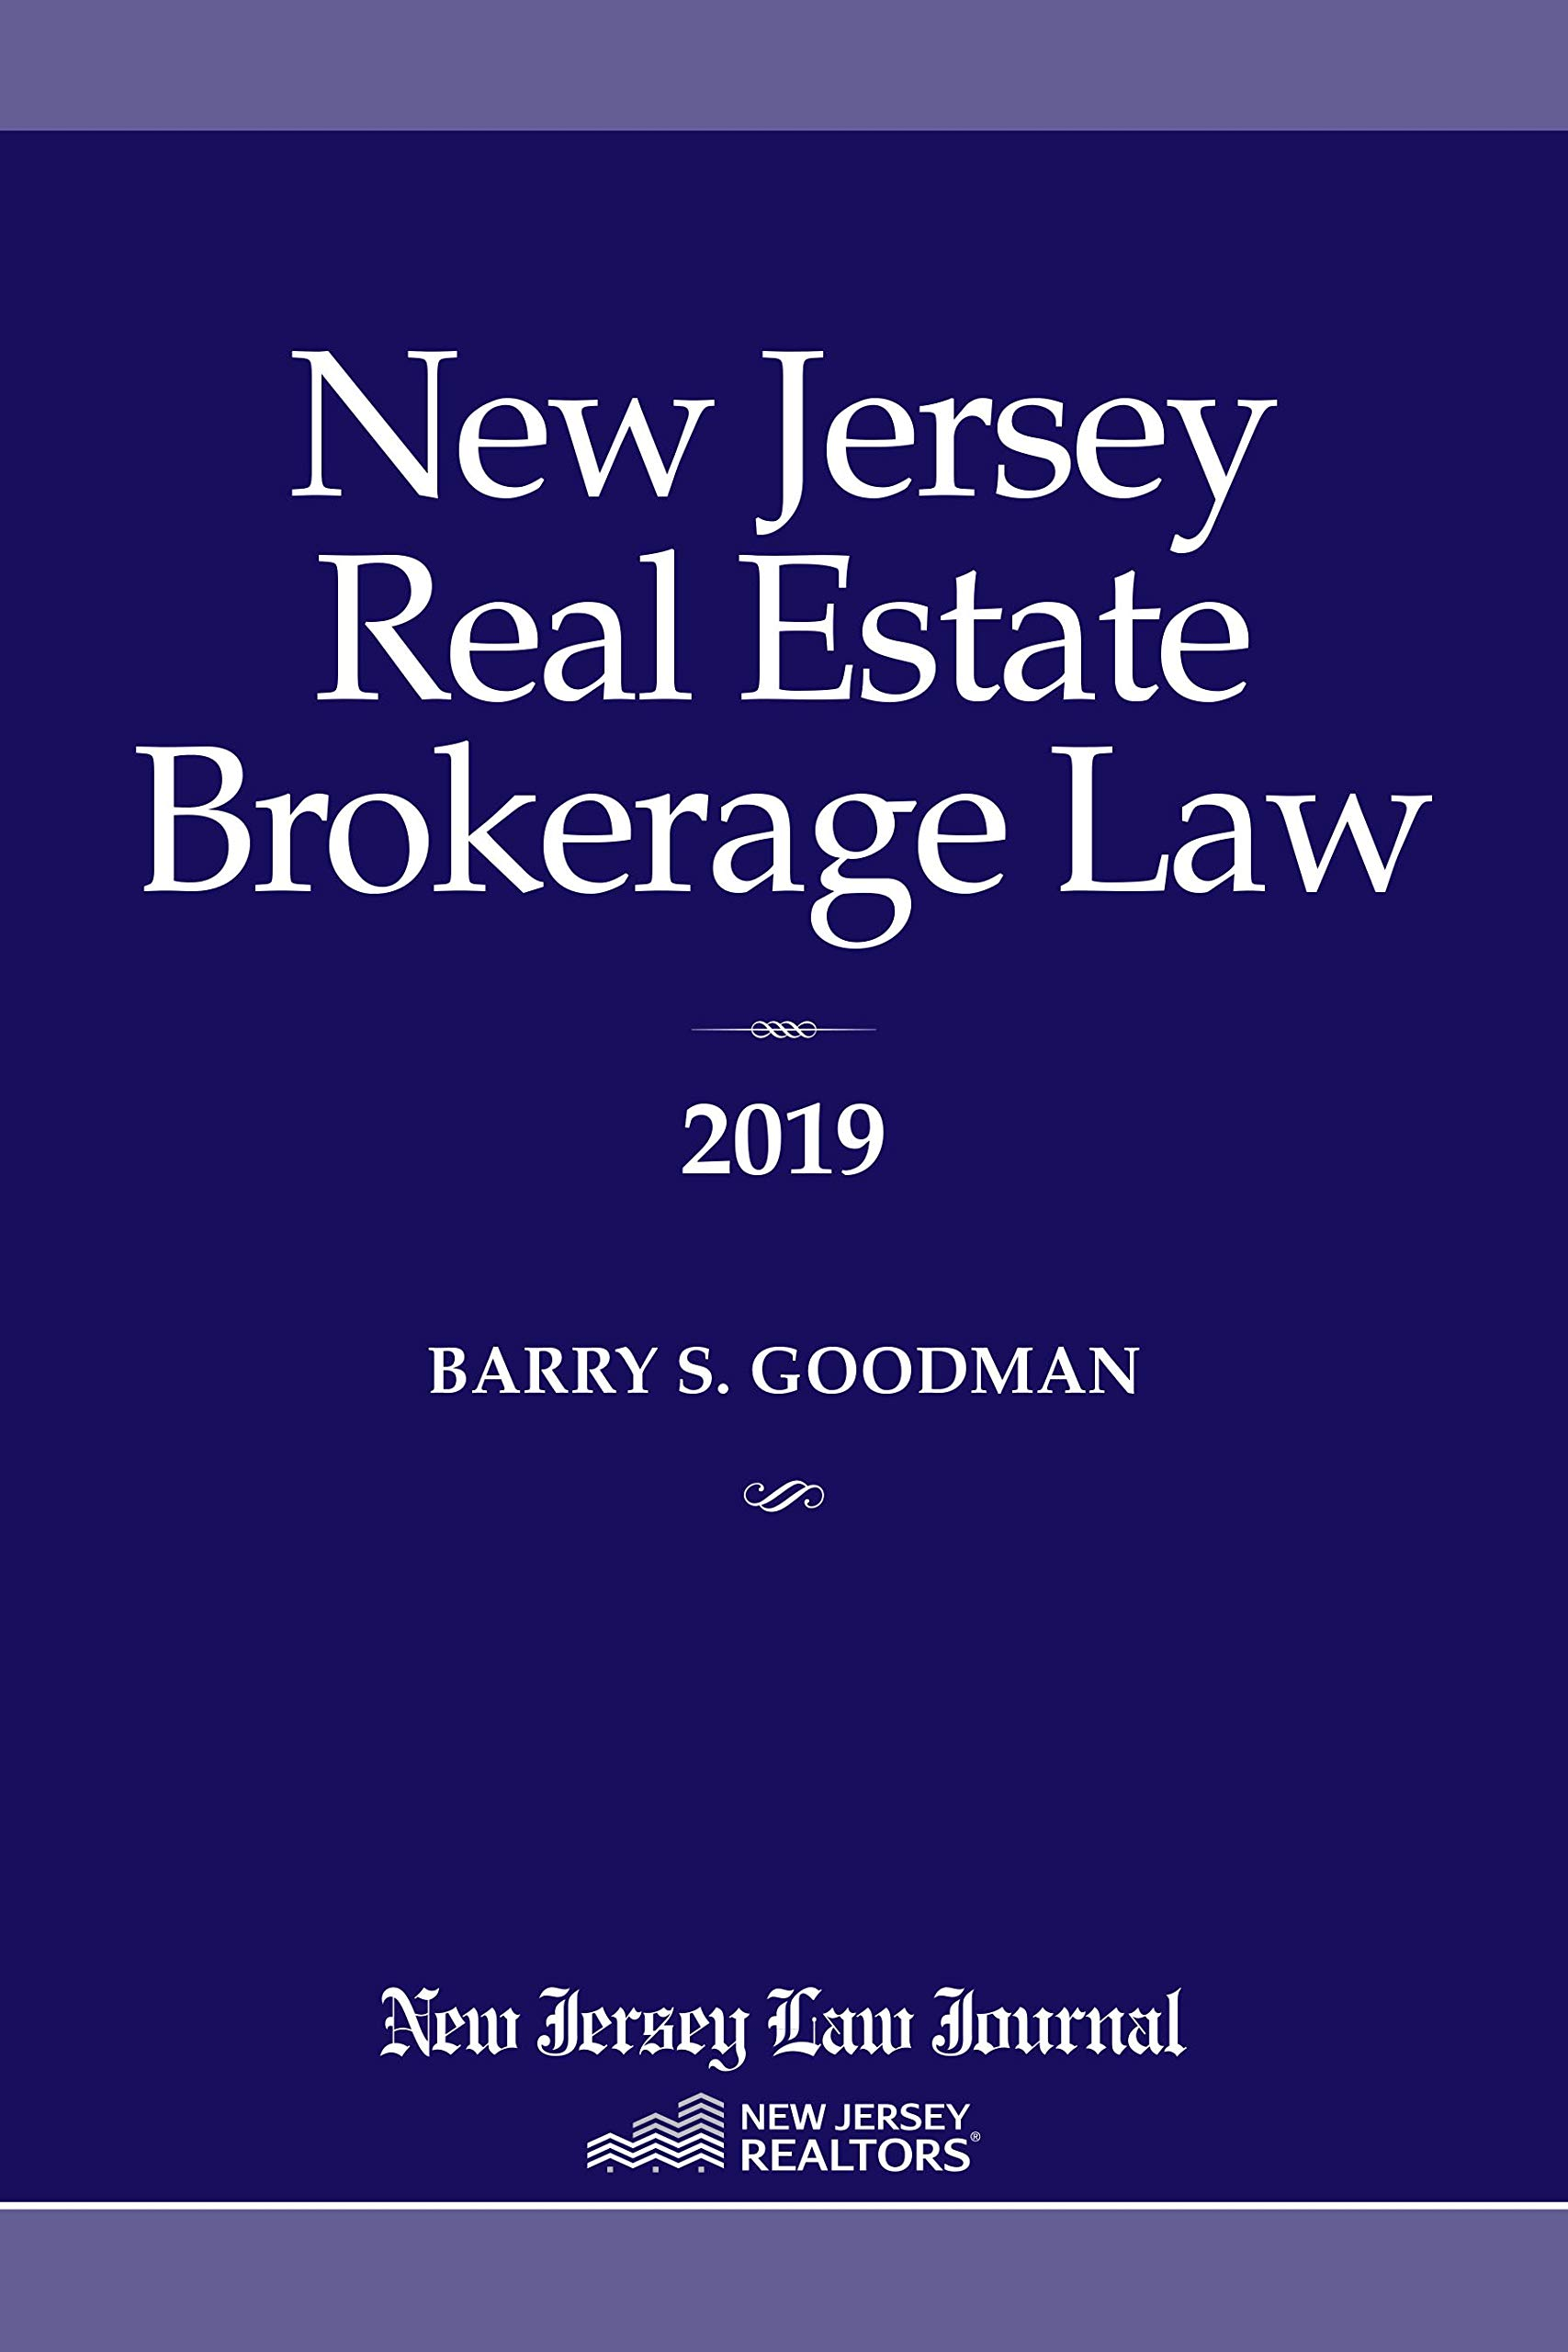 Buy New Jersey Real Estate Brokerage Law 2019 Book Online At Low Prices In India New Jersey Real Estate Brokerage Law 2019 Reviews Ratings Amazon In